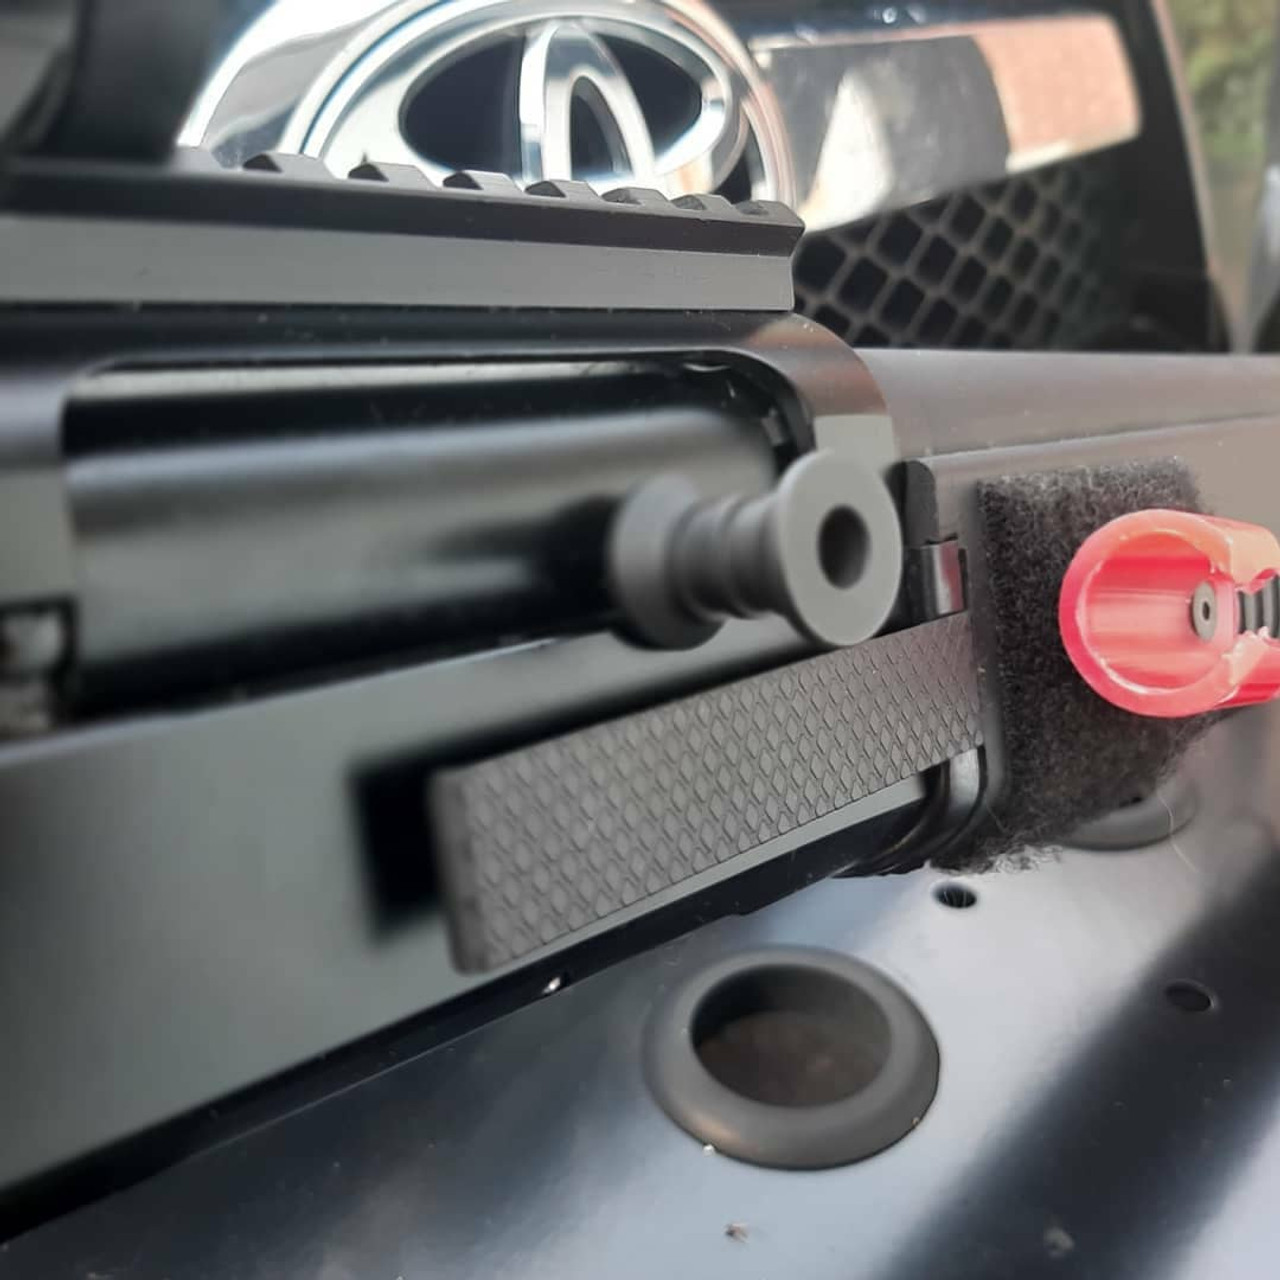 Benelli M4 Bolt Assist Device (BAD) Mod 2